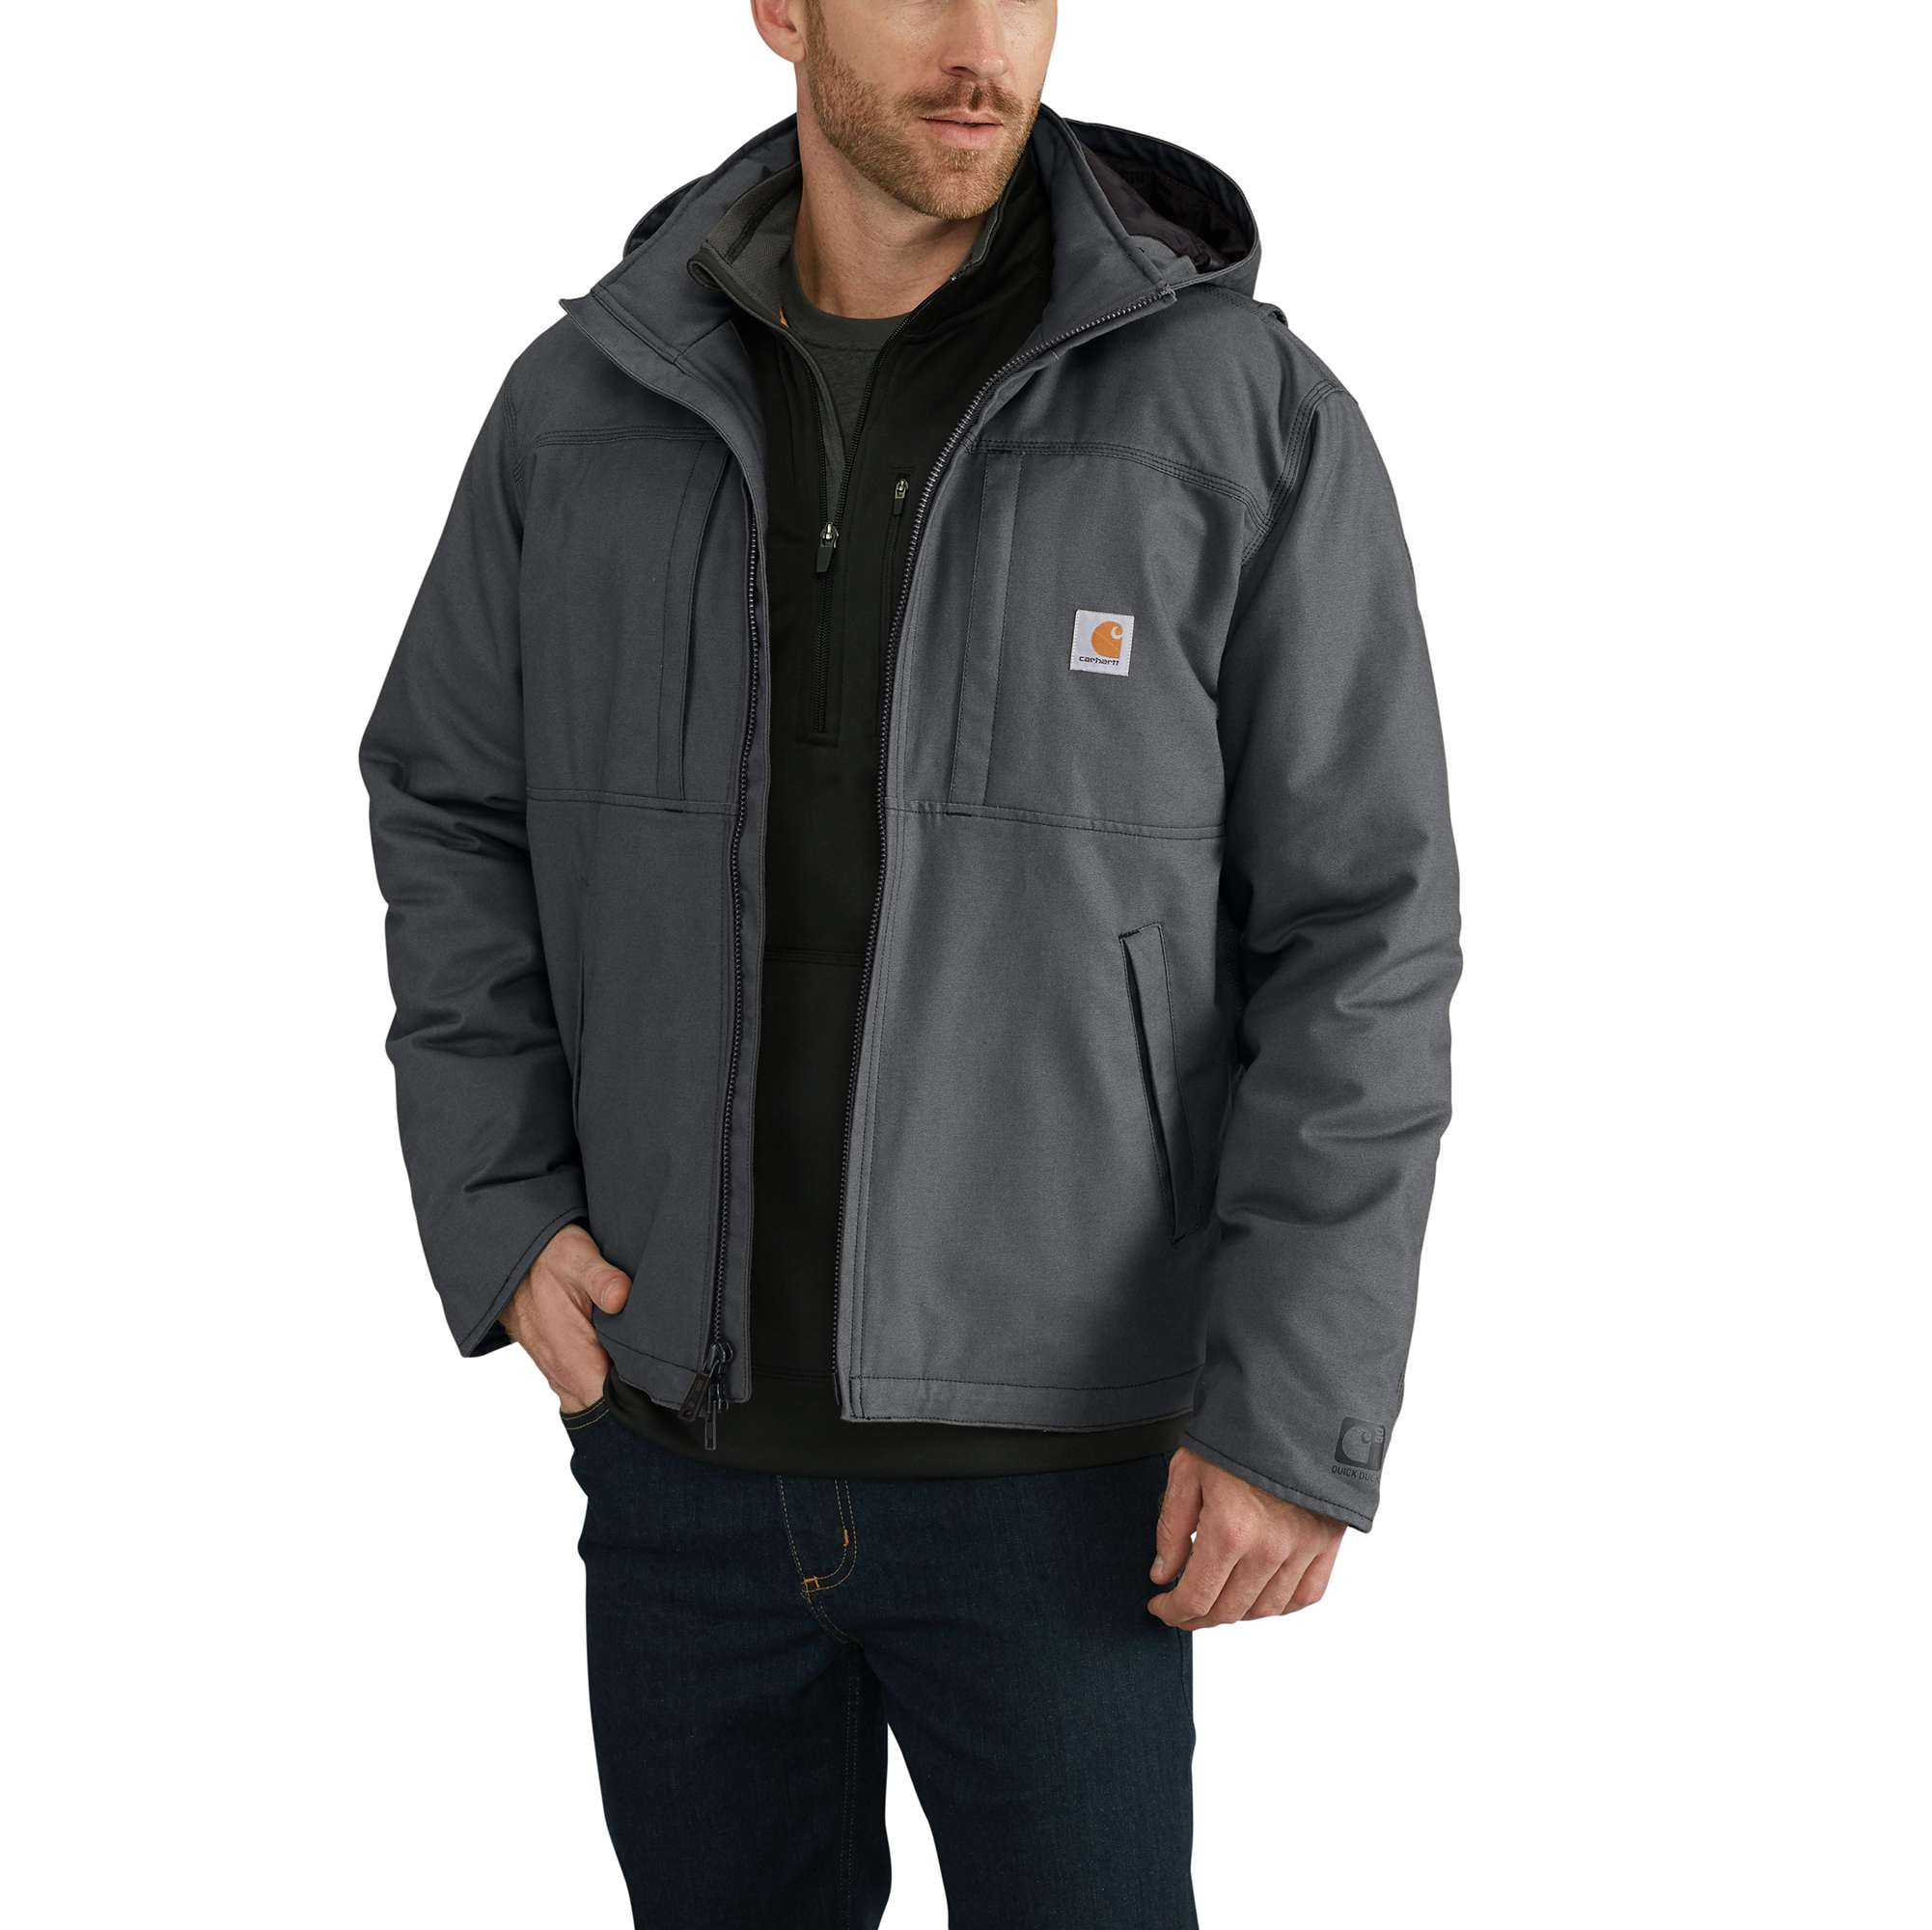 Men's Full Swing Armstrong Active Jacket, Gray, swatch